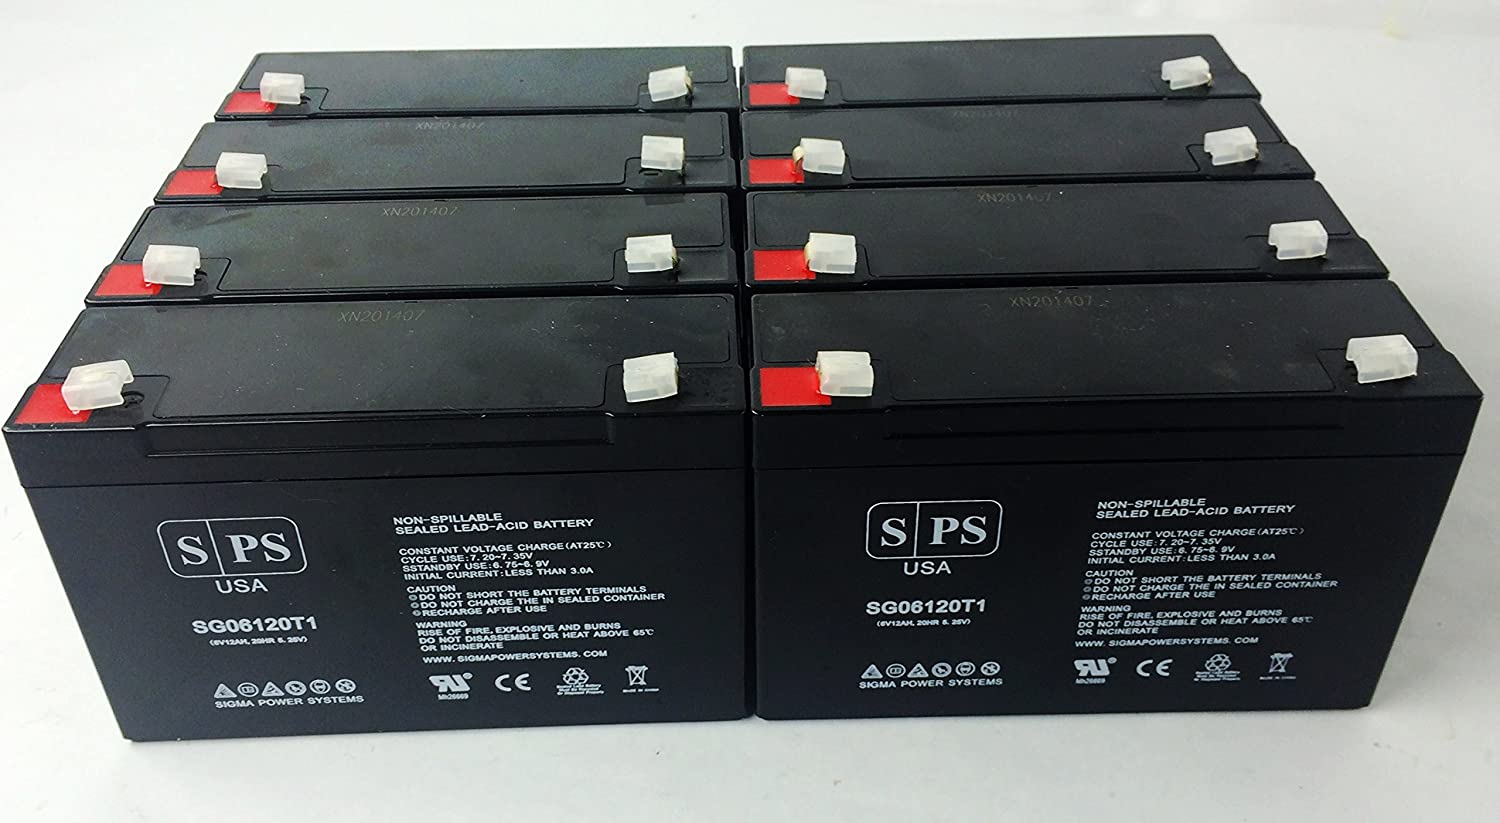 SPS Brand 6V 12Ah Max 41% OFF Replacement Battery Kits APC RBC52 Max 69% OFF UPS for 8